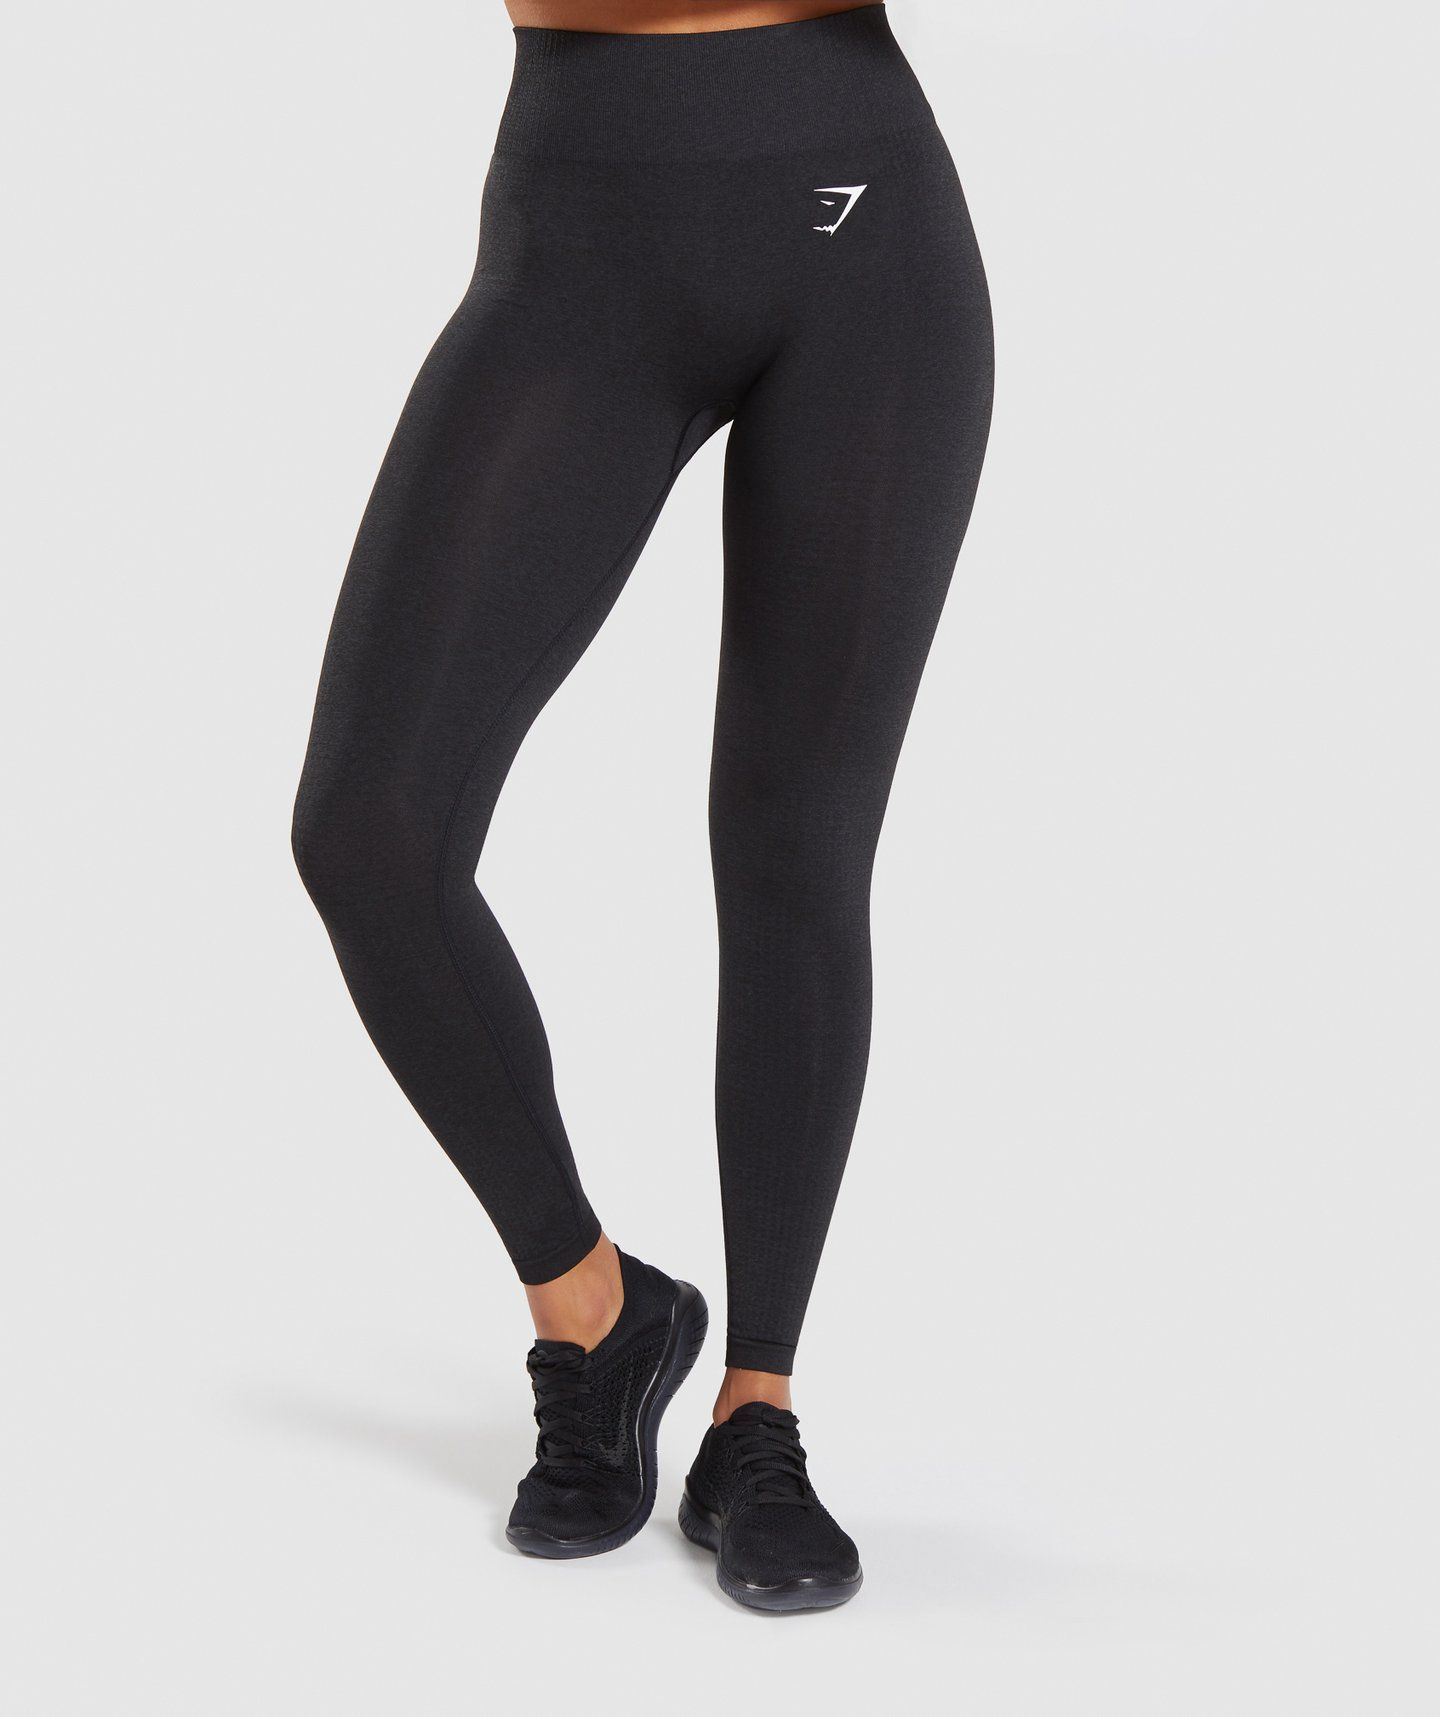 Gymshark Vital Seamless Leggings - Black Marl in 2020 | Seamless ...